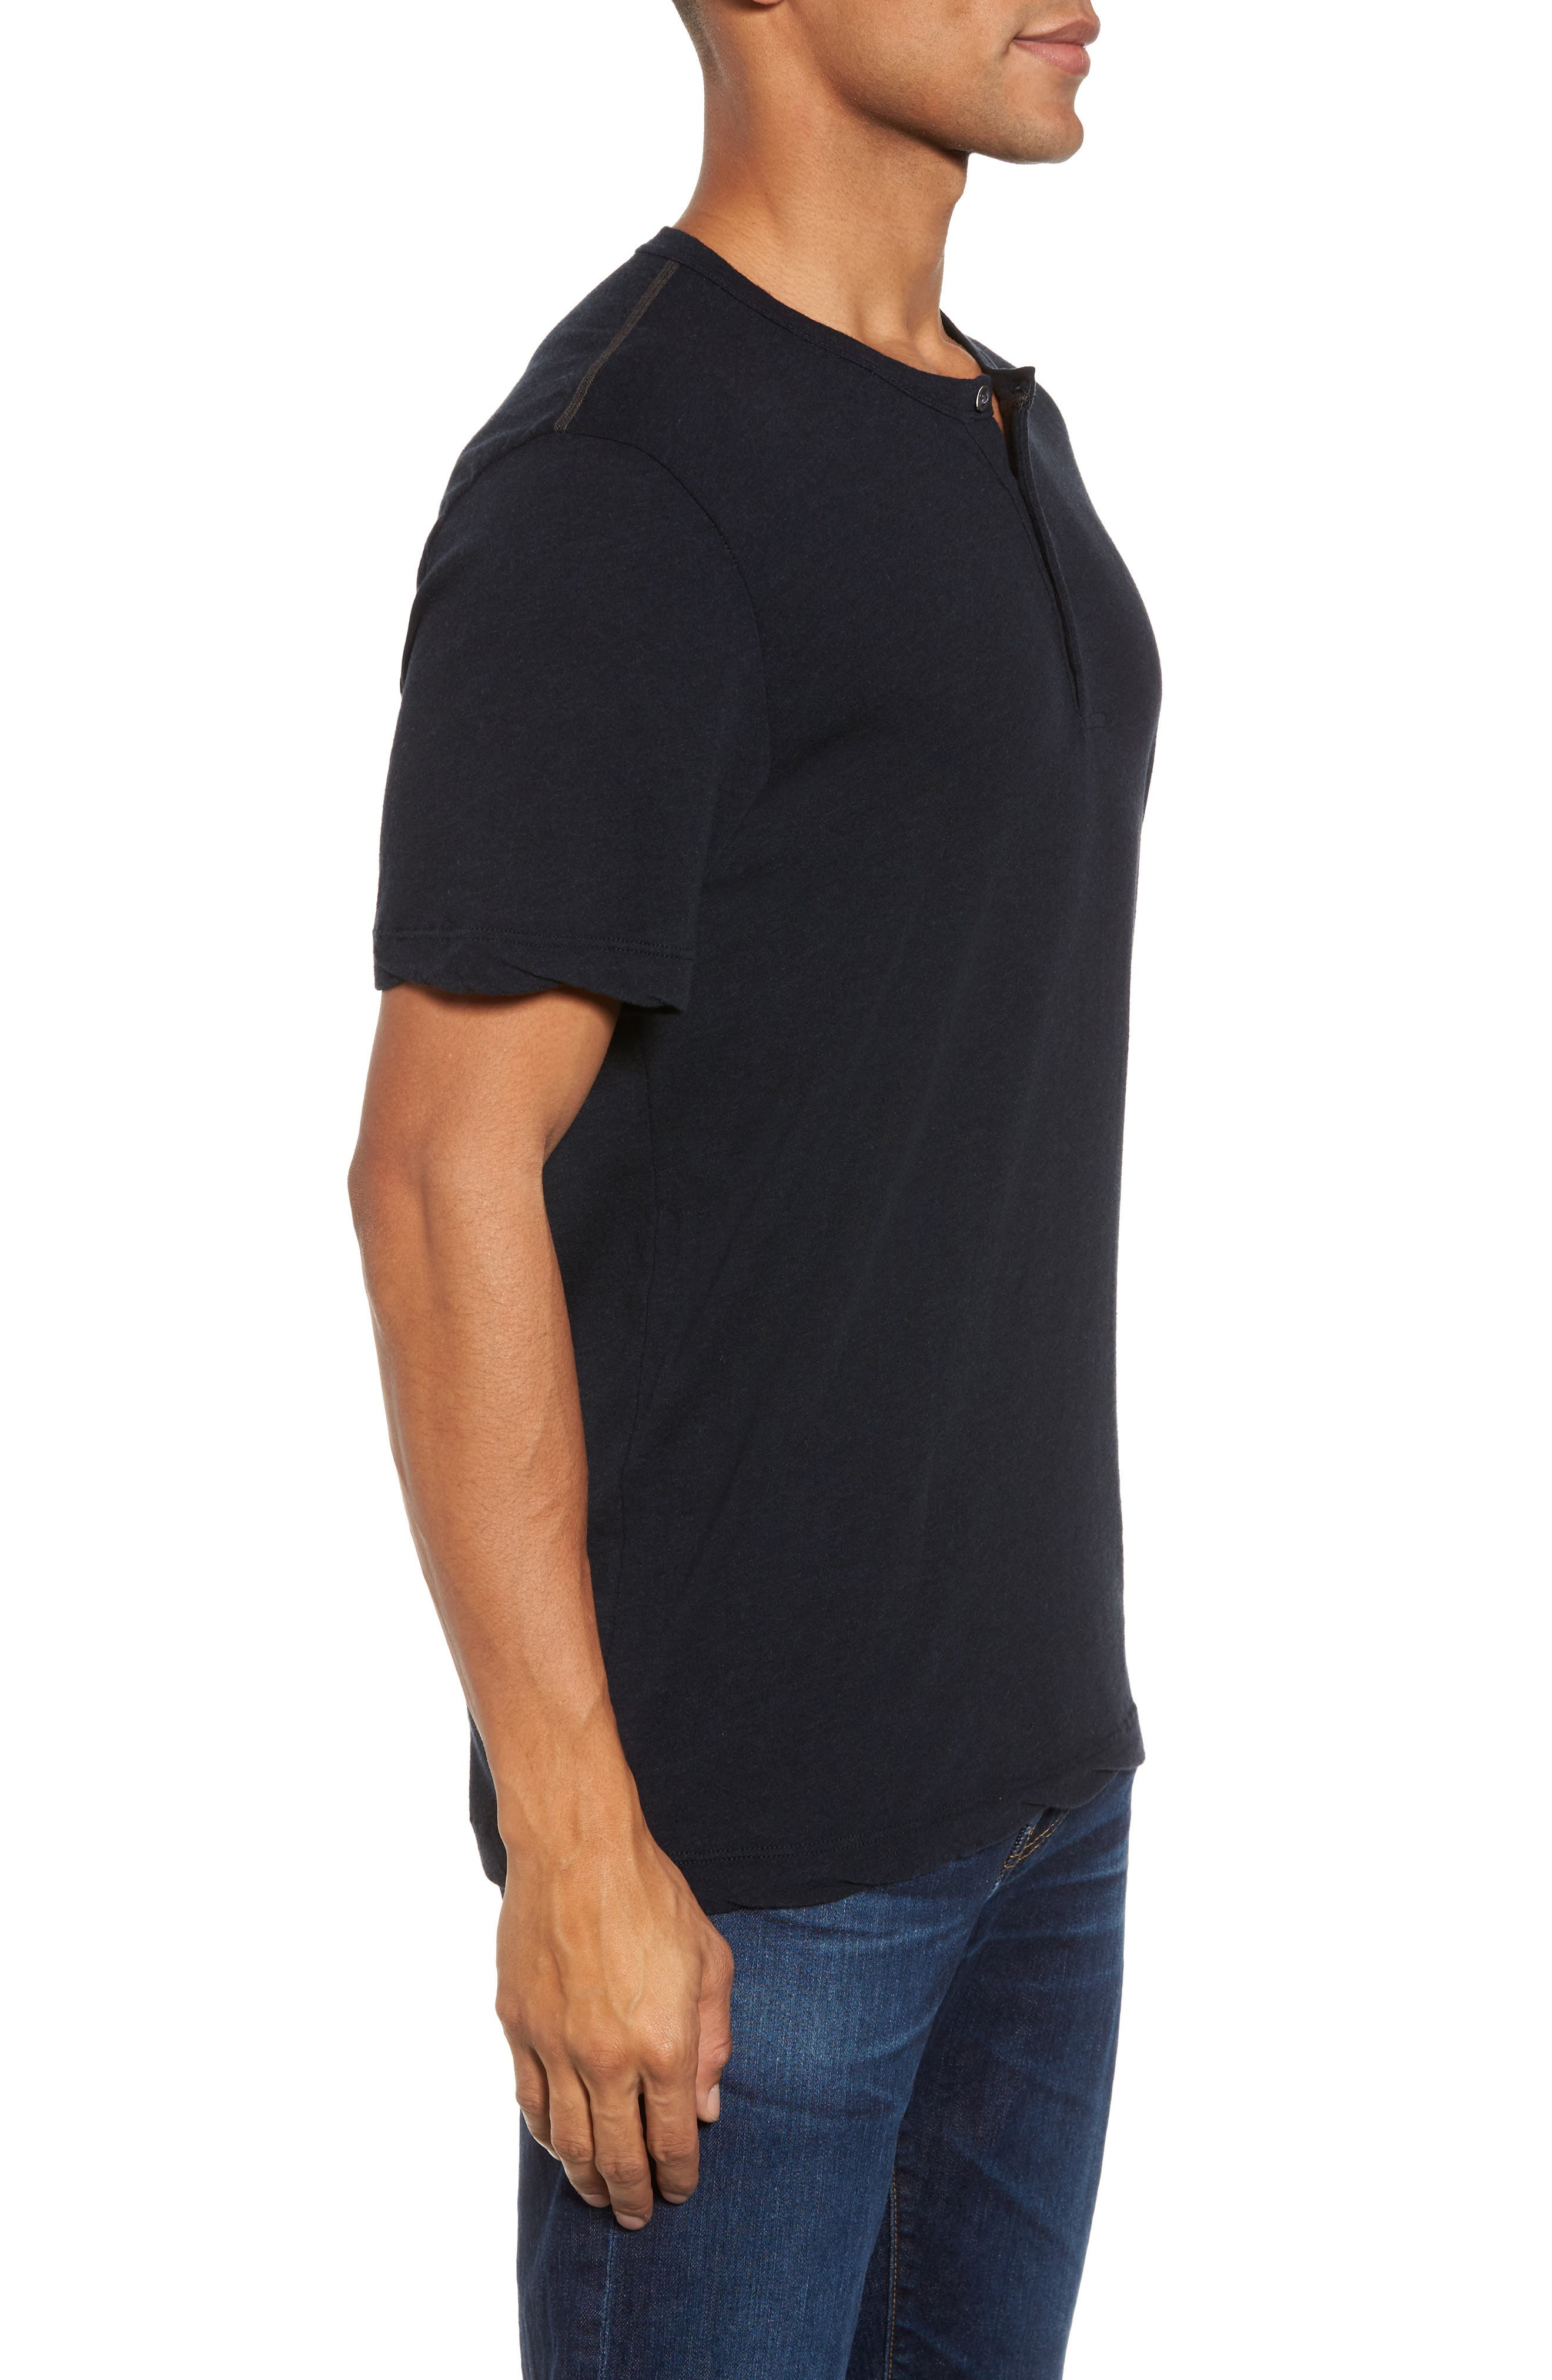 Alternate Image 3  - James Perse Contrast Stitch Henley T-Shirt